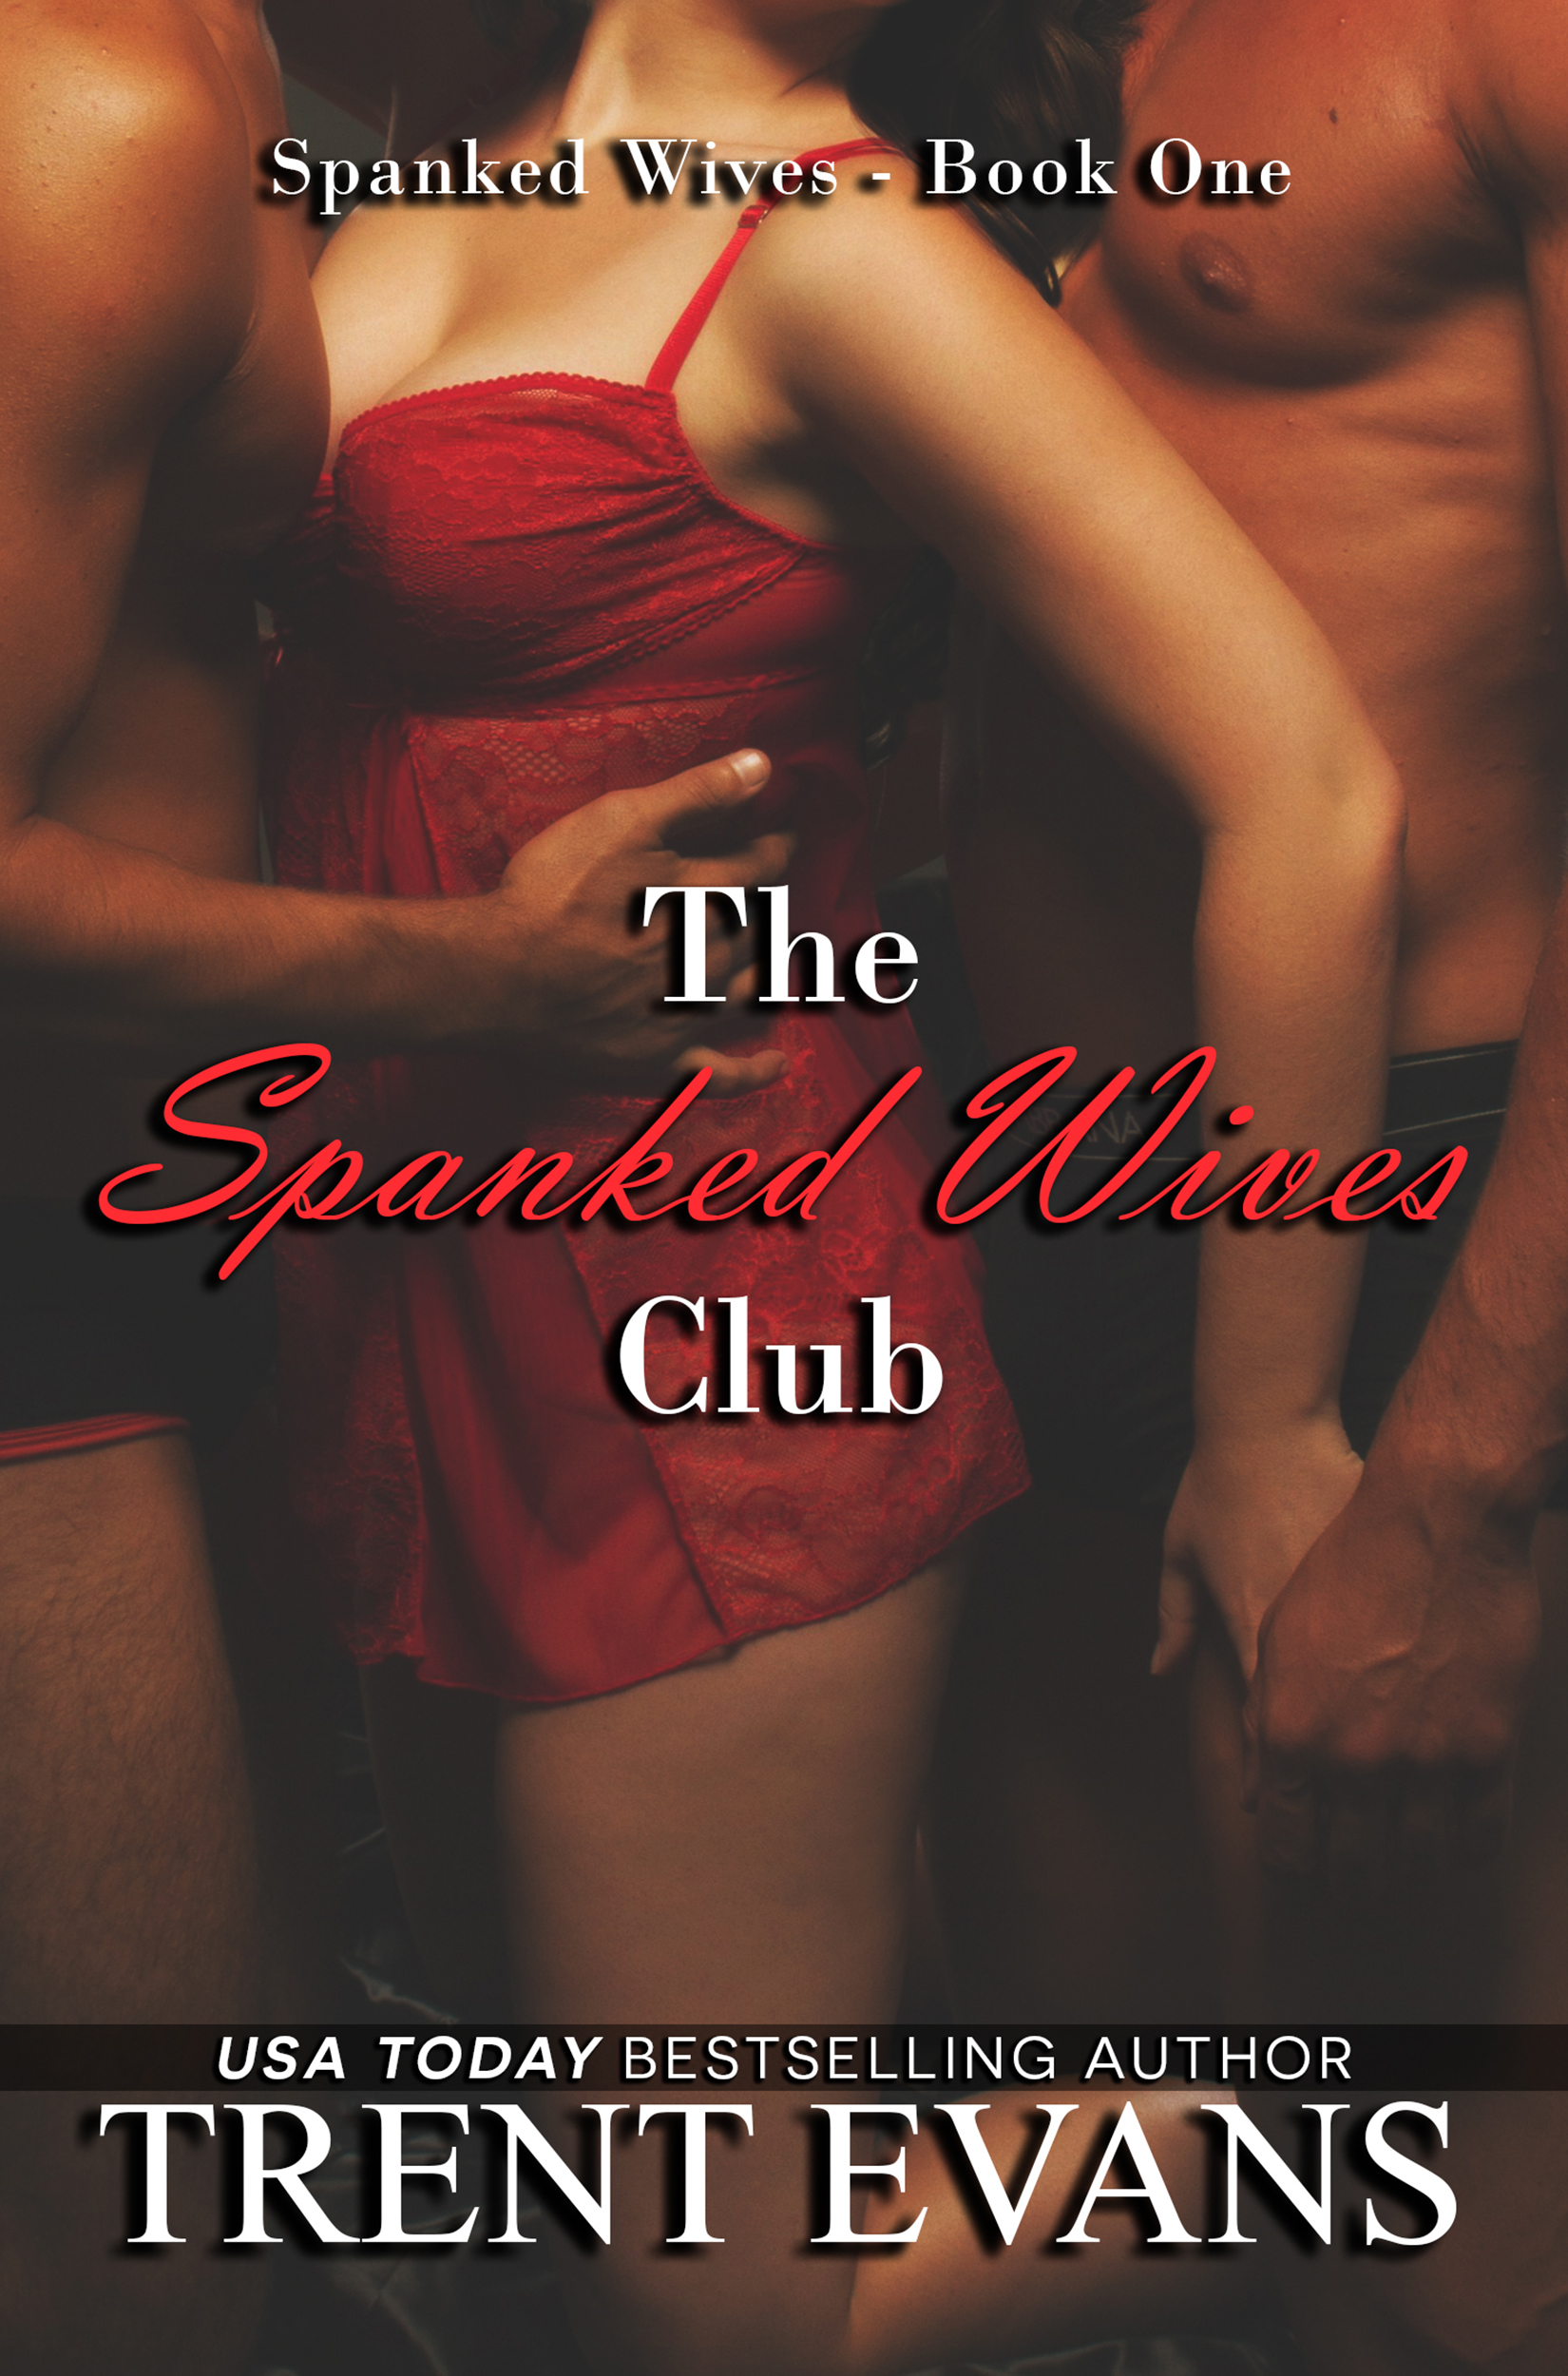 The Spanked Wives Club